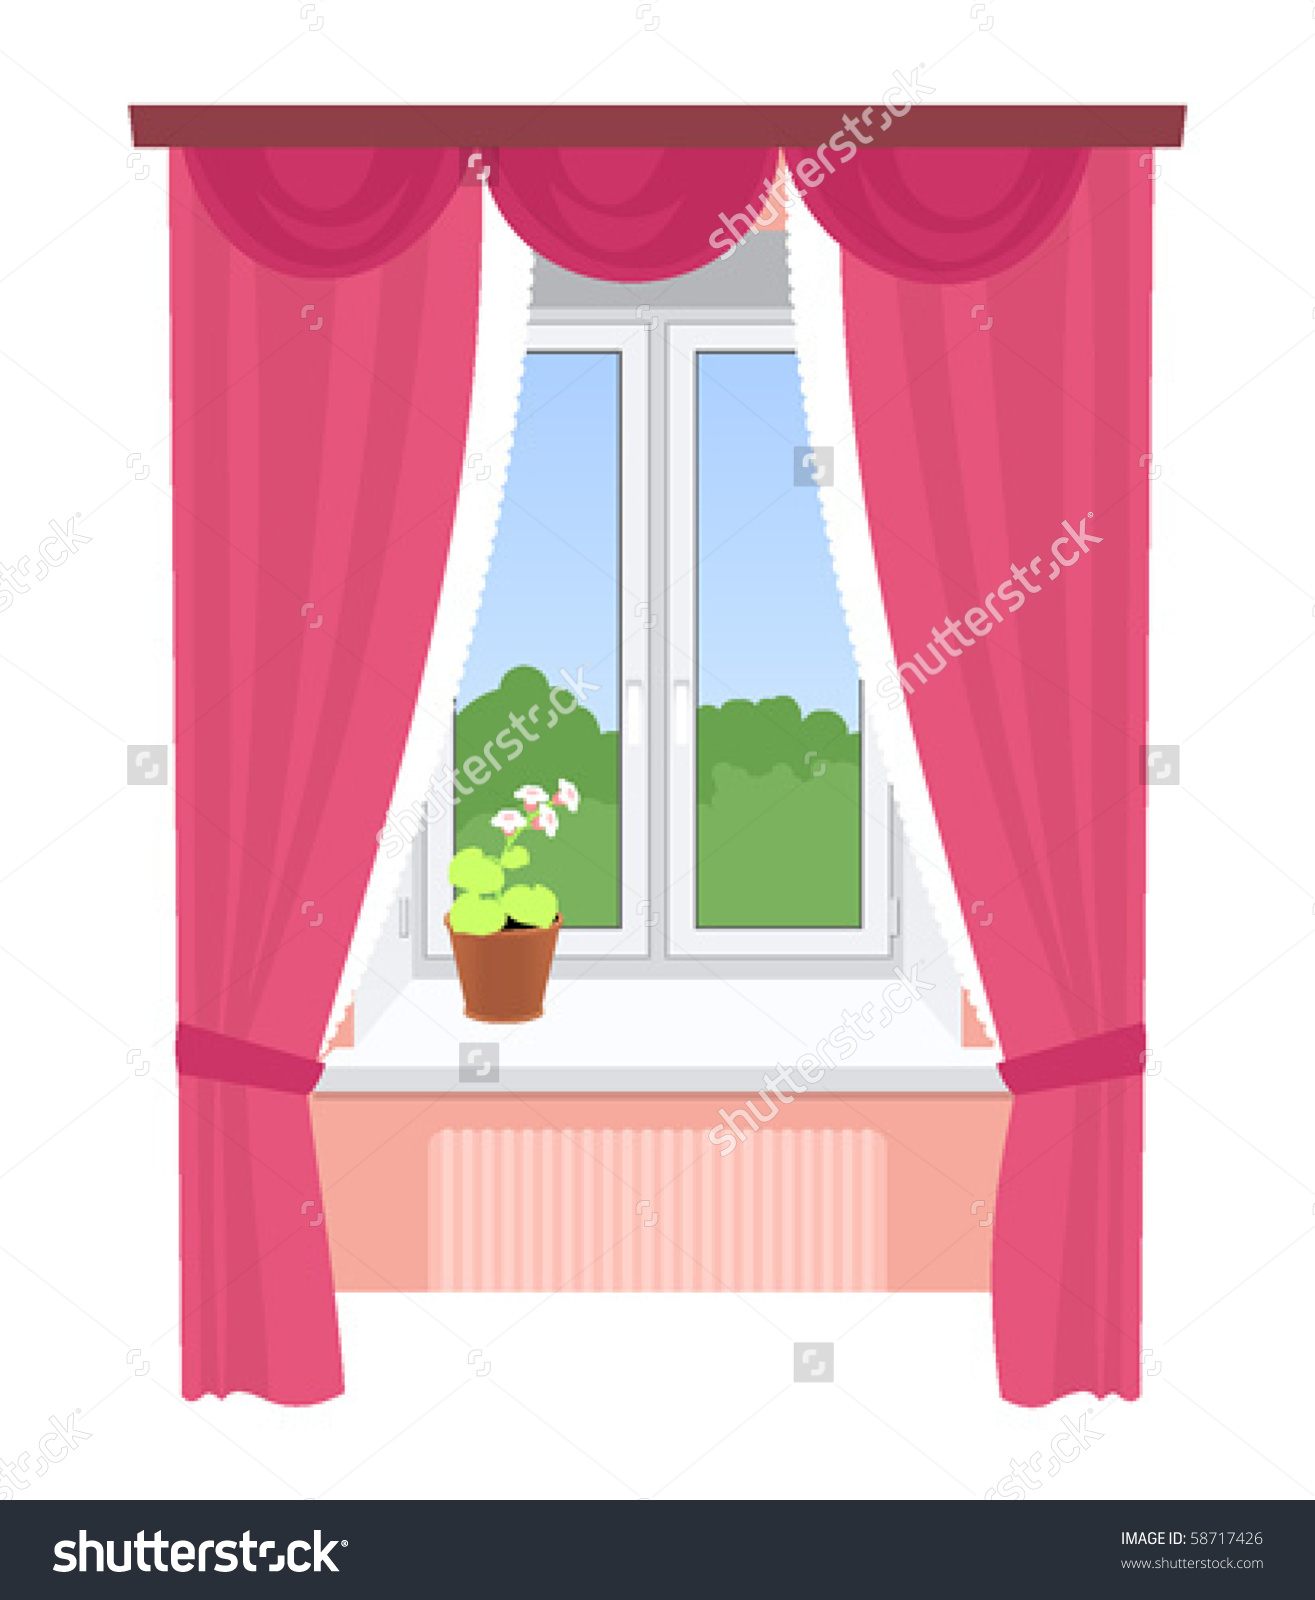 Kitchen Window Clip Art: Window With Curtains Clipart 9 » Clipart Station